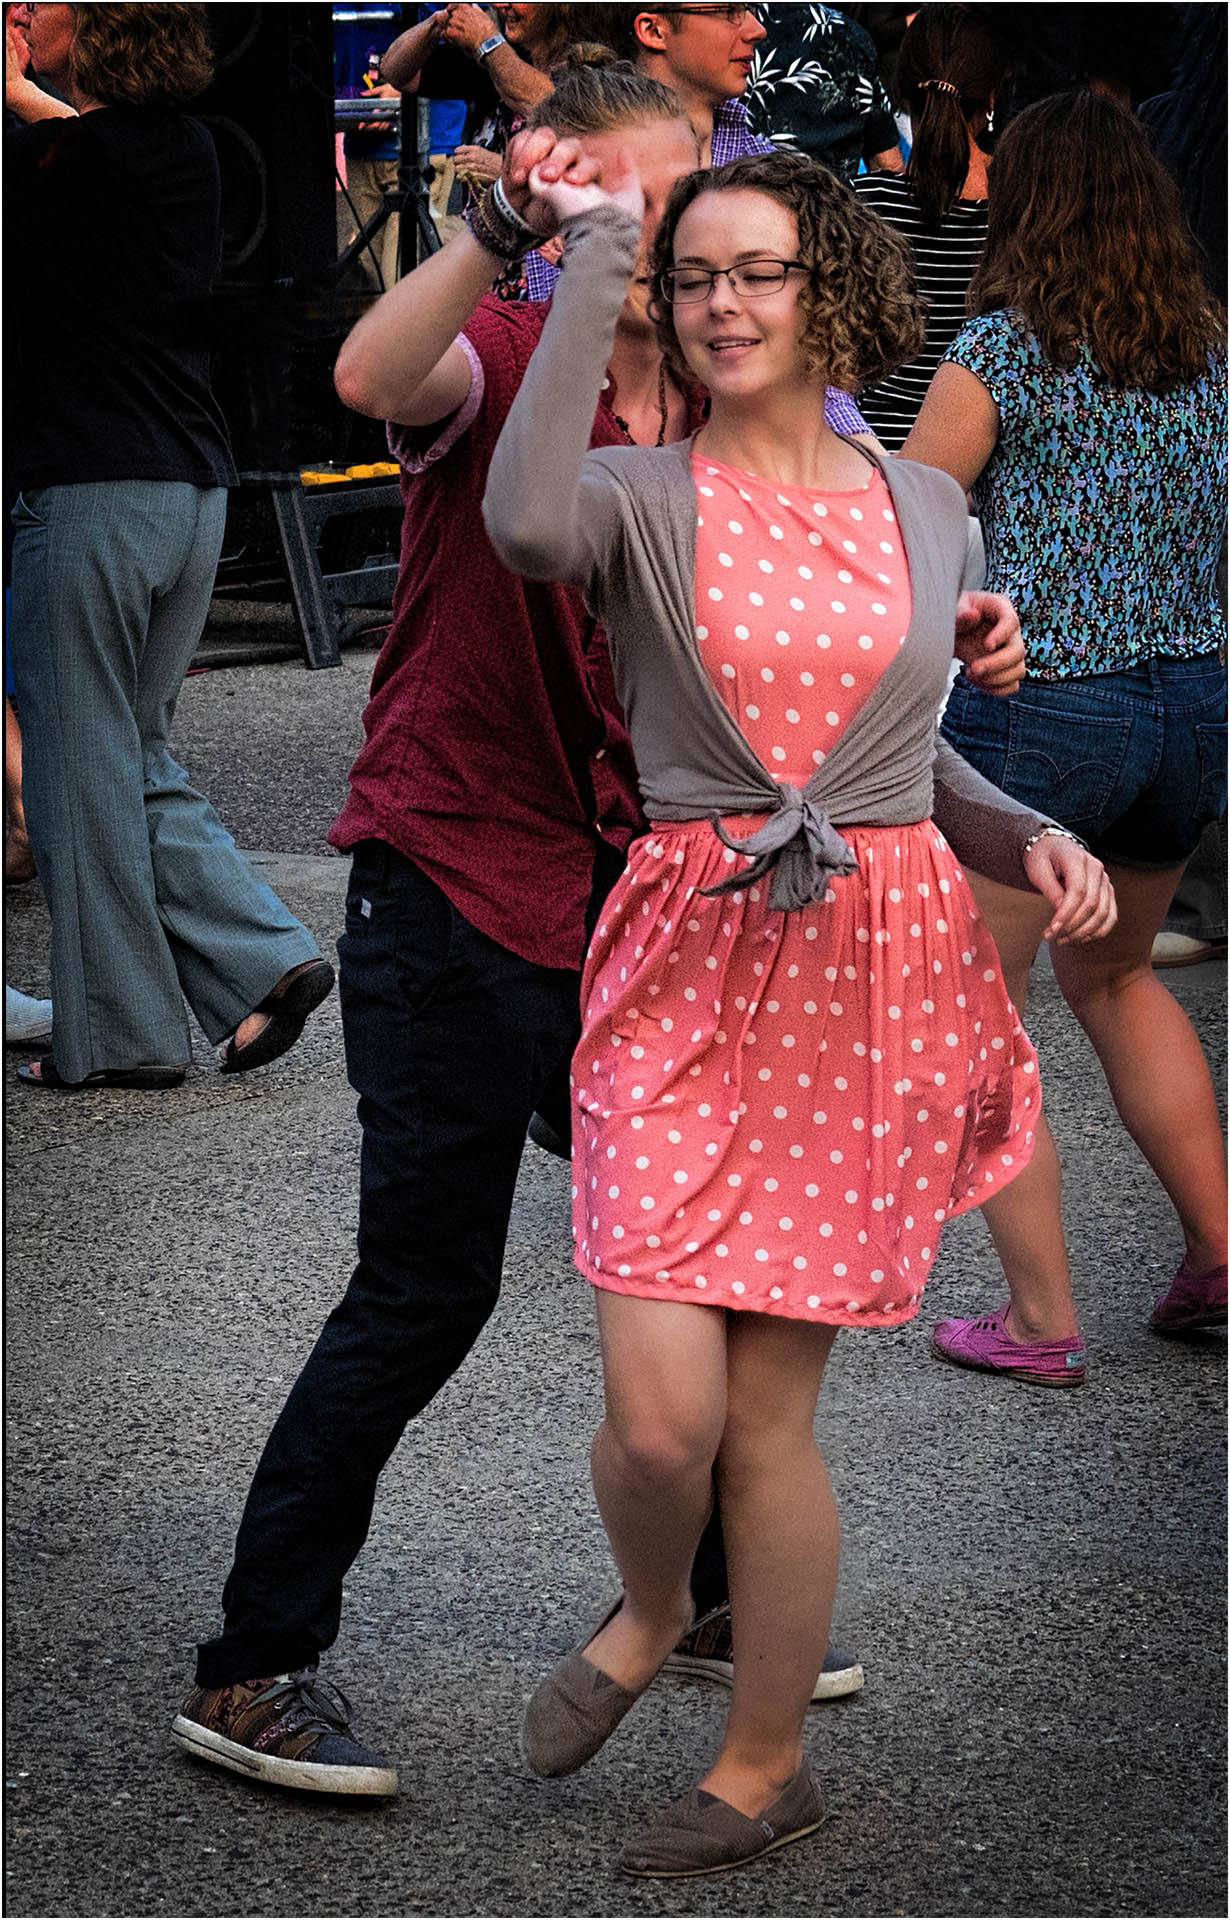 Swing Dancers - Digital (Action) - Name Withheld Per Request